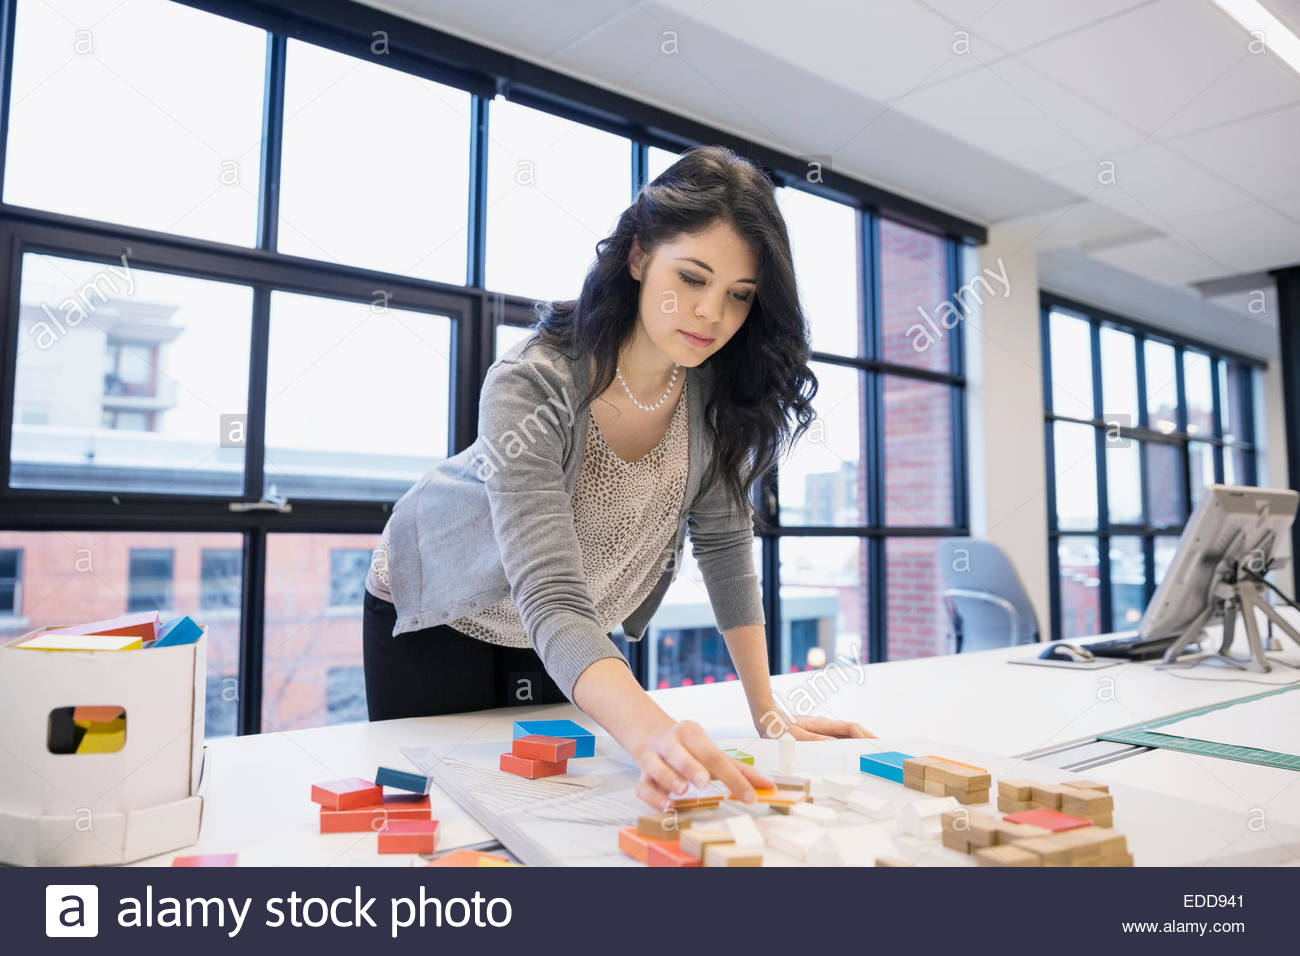 Architect arranging model in office - Stock Image